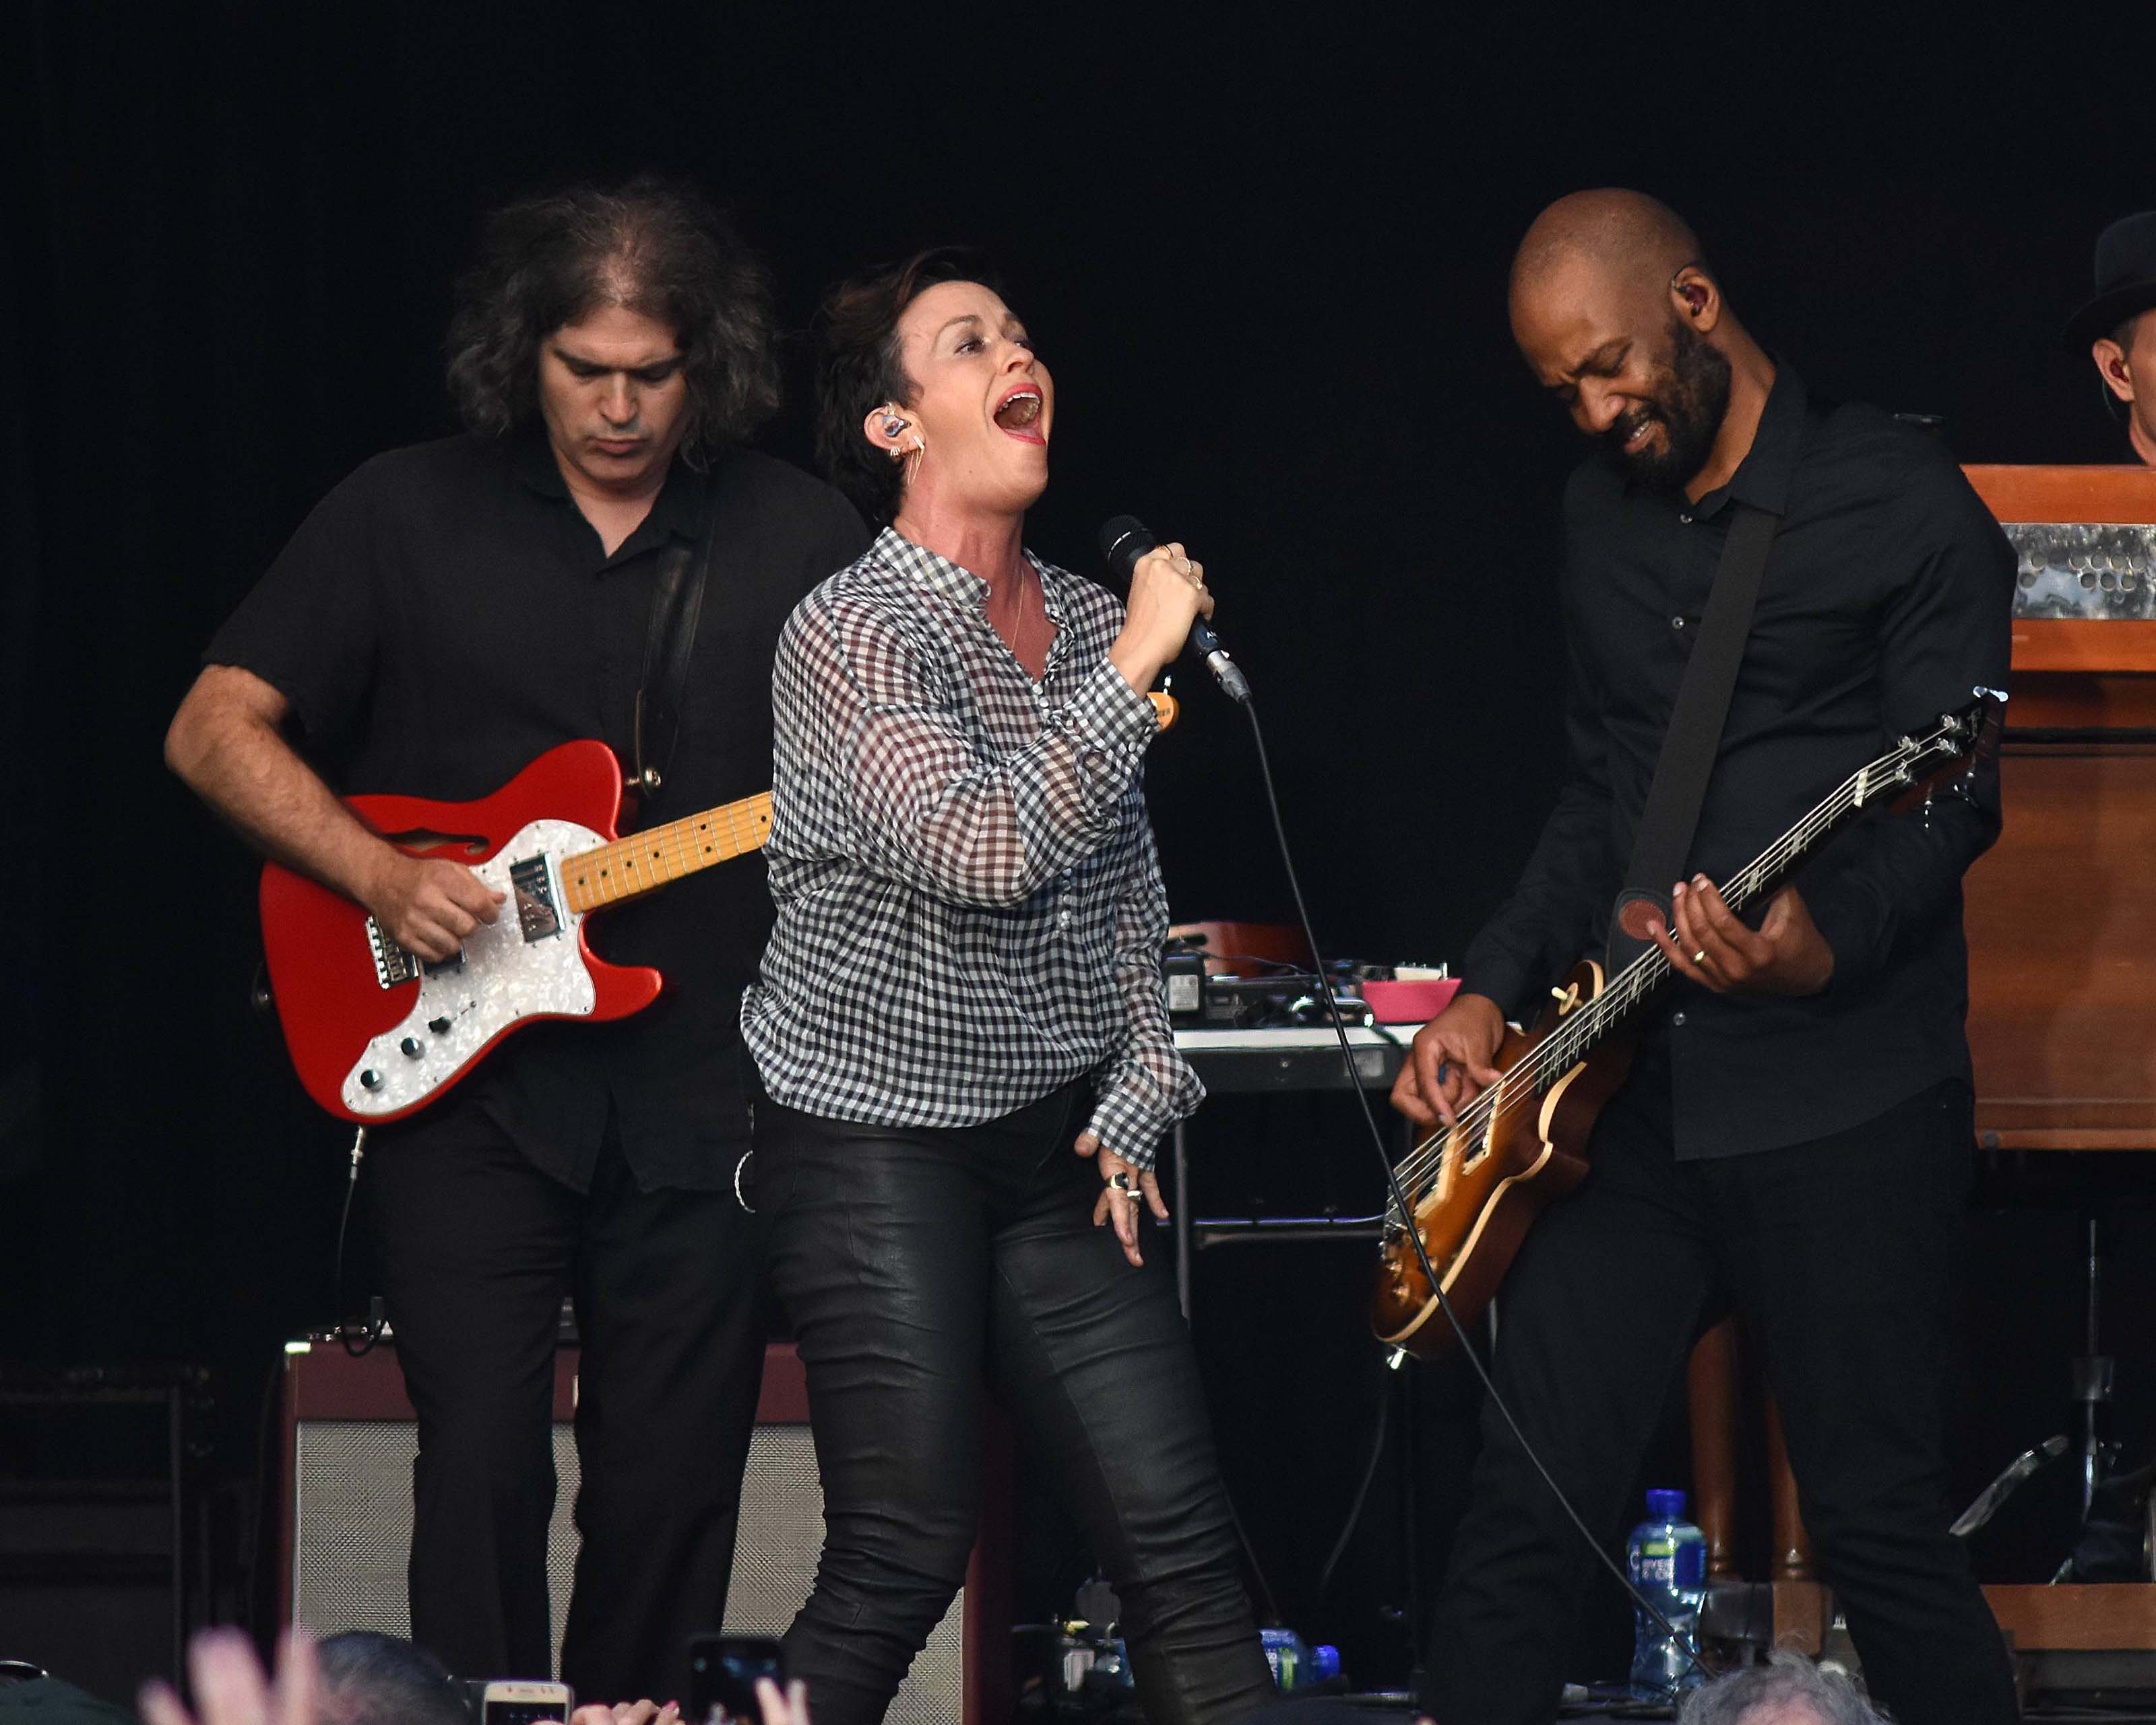 Alanis Morissette performs at Iveagh Gardens